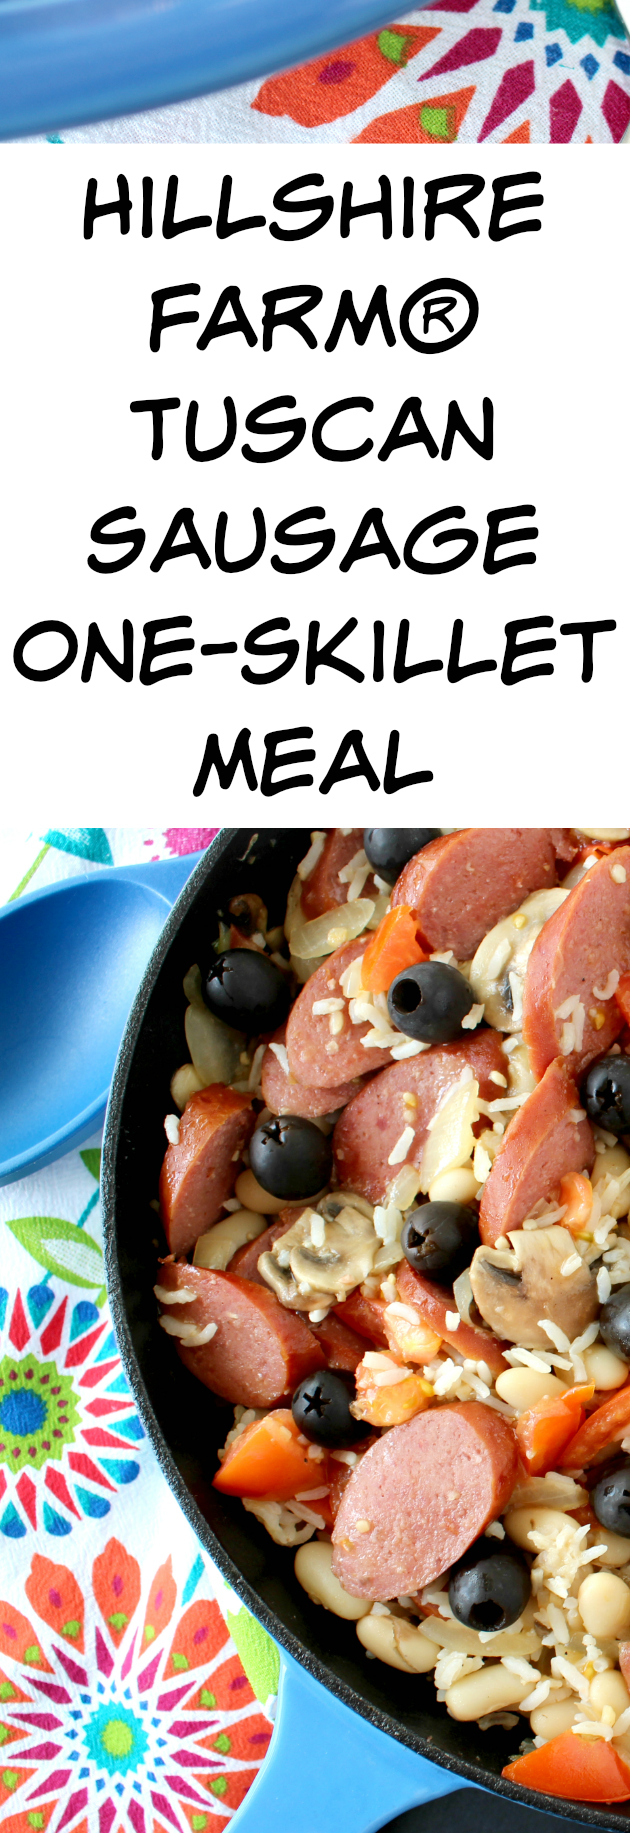 Hillshire Farm® Tuscan Sausage One-Skillet Meal